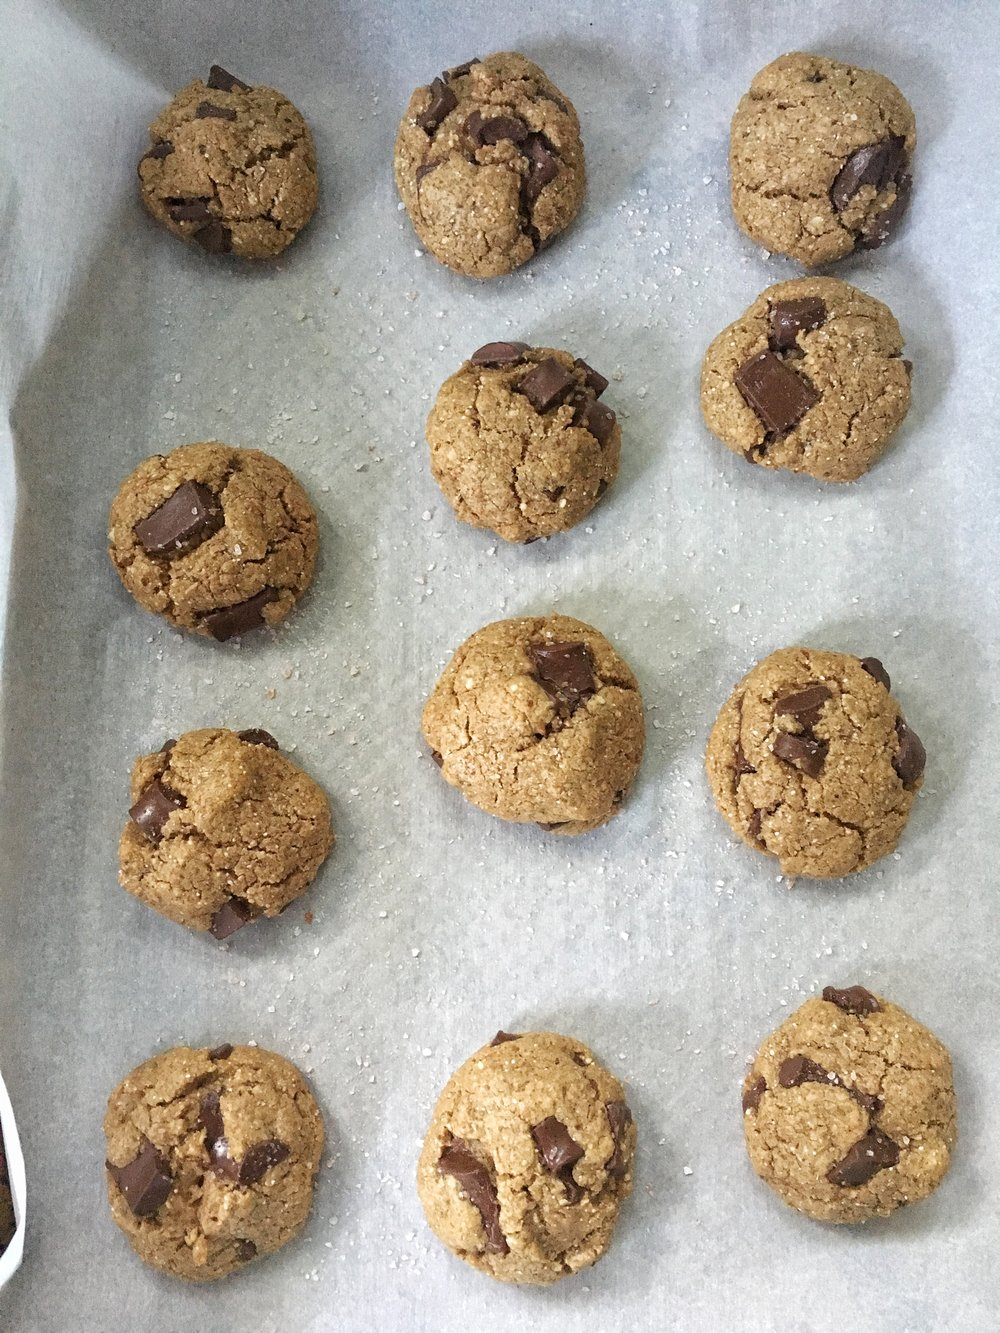 Don't forget to top the cookies with sea salt- so good!